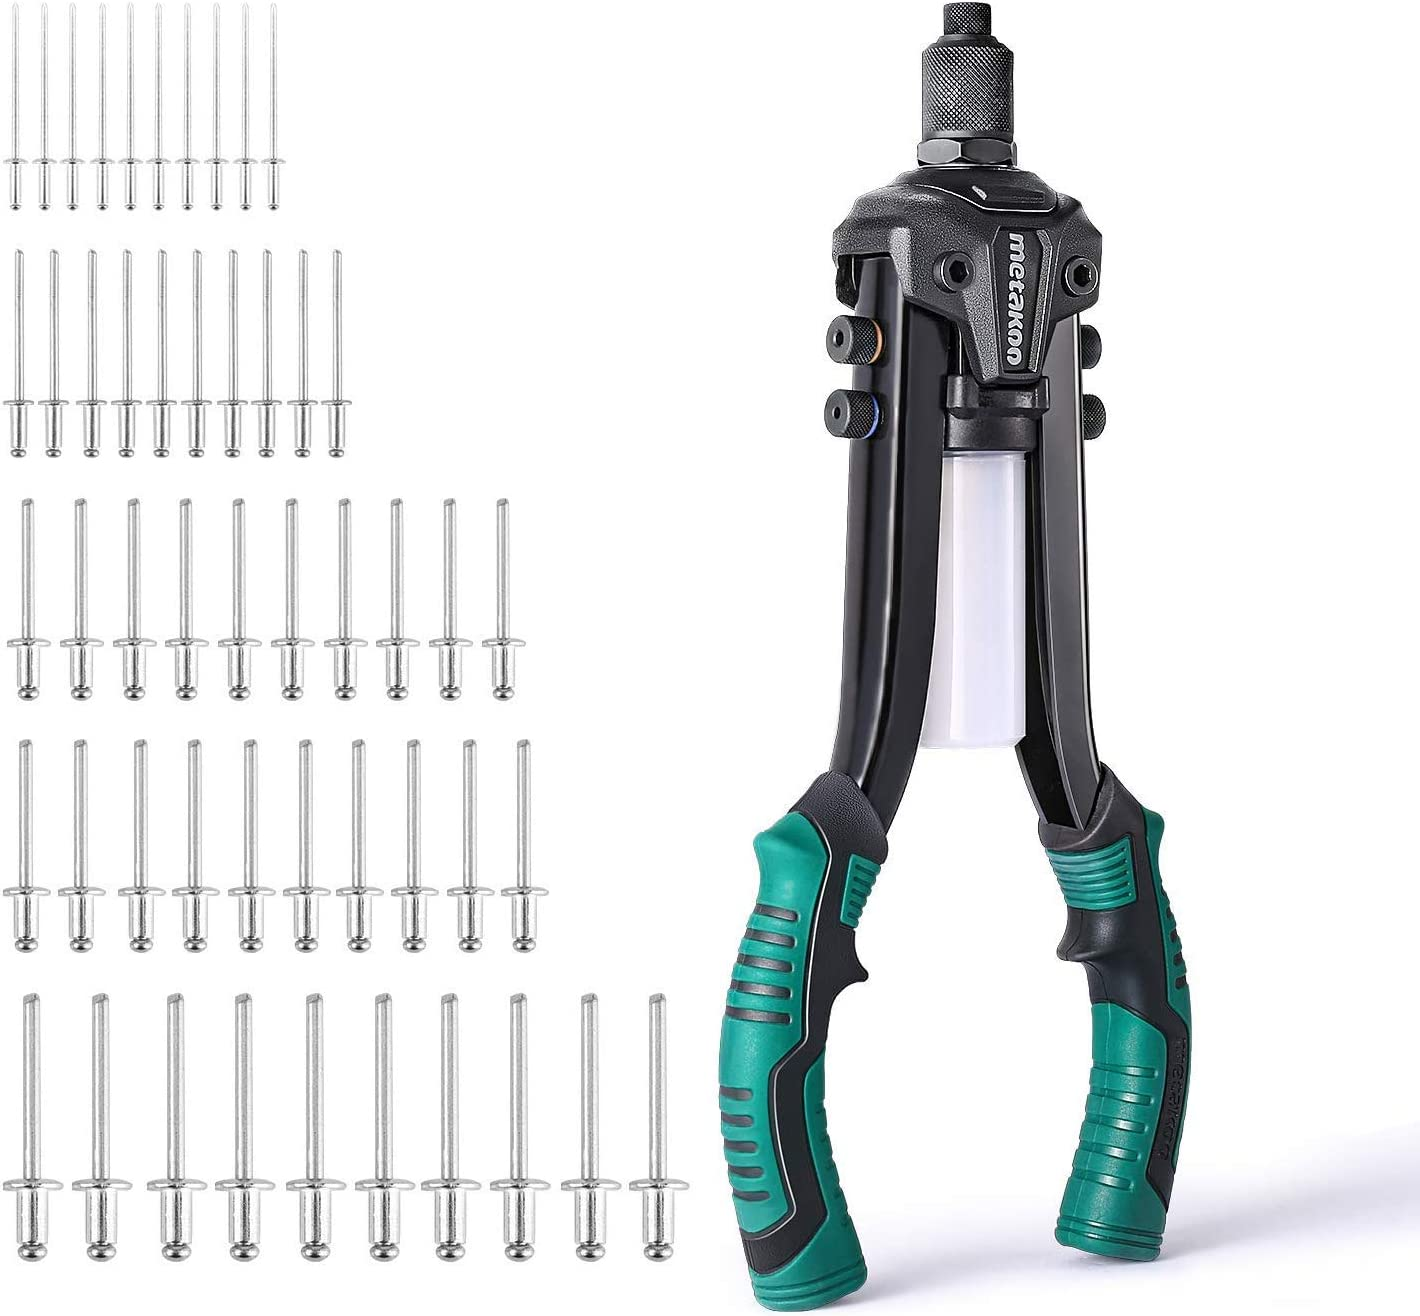 """Rivet Gun,13/"""" Heavy Duty Hand Riveter with 5 Interchangable Color-Coded Heads,5 in 1 Hand Riveter Set with 50-Piece Rivets-METAKOO-MHR02"""